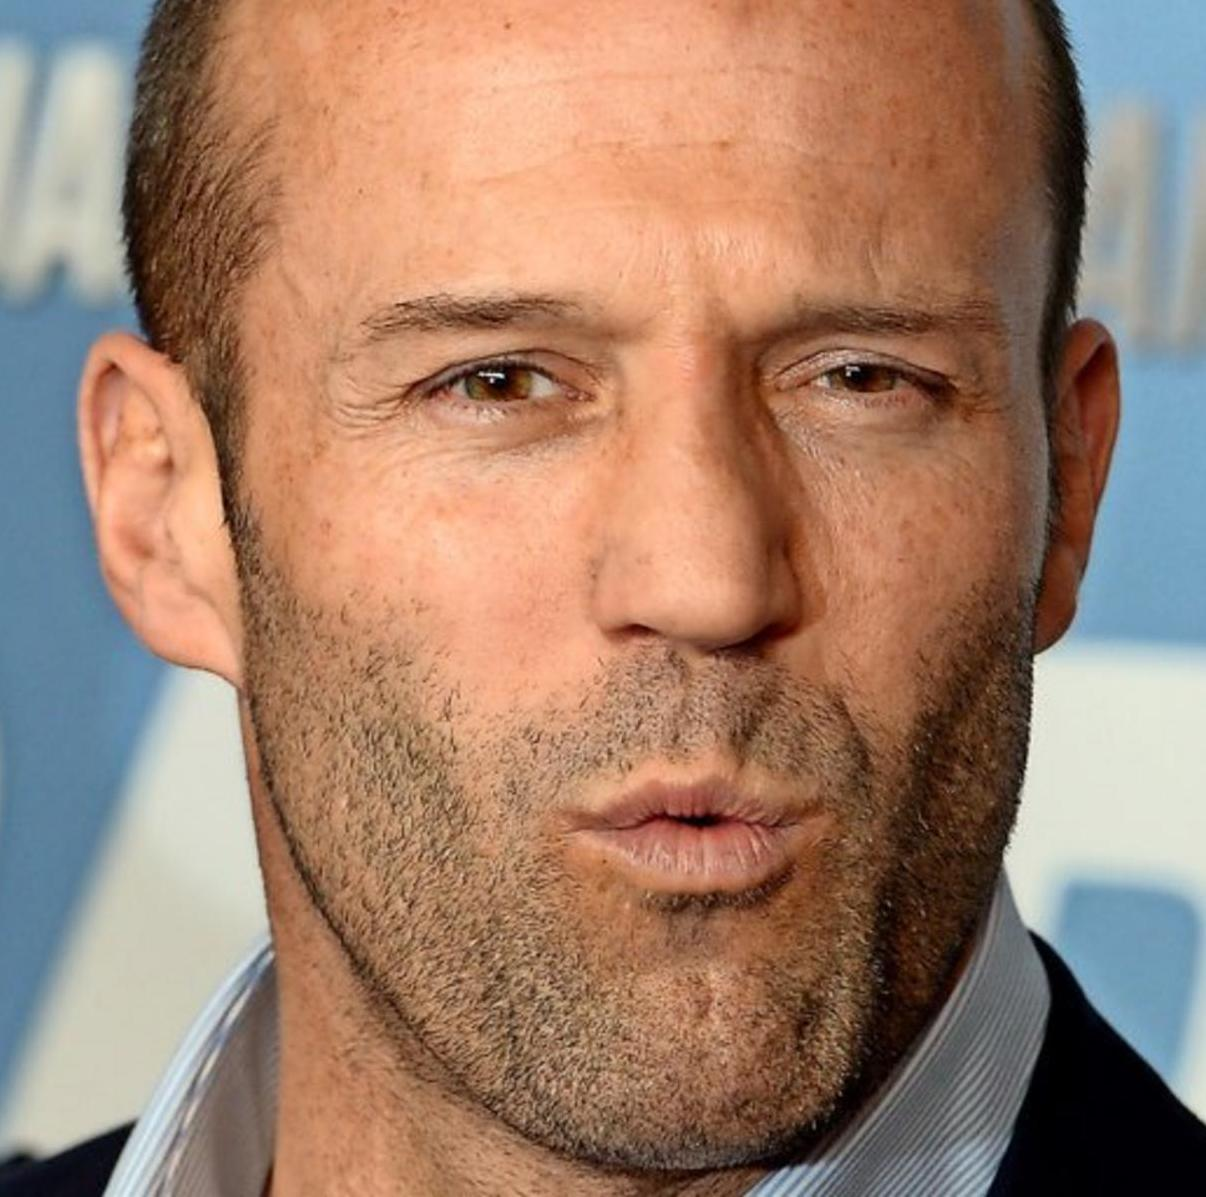 18 1 1 25 Facts That Will Make You Love Jason Statham Even More Than You Already Do